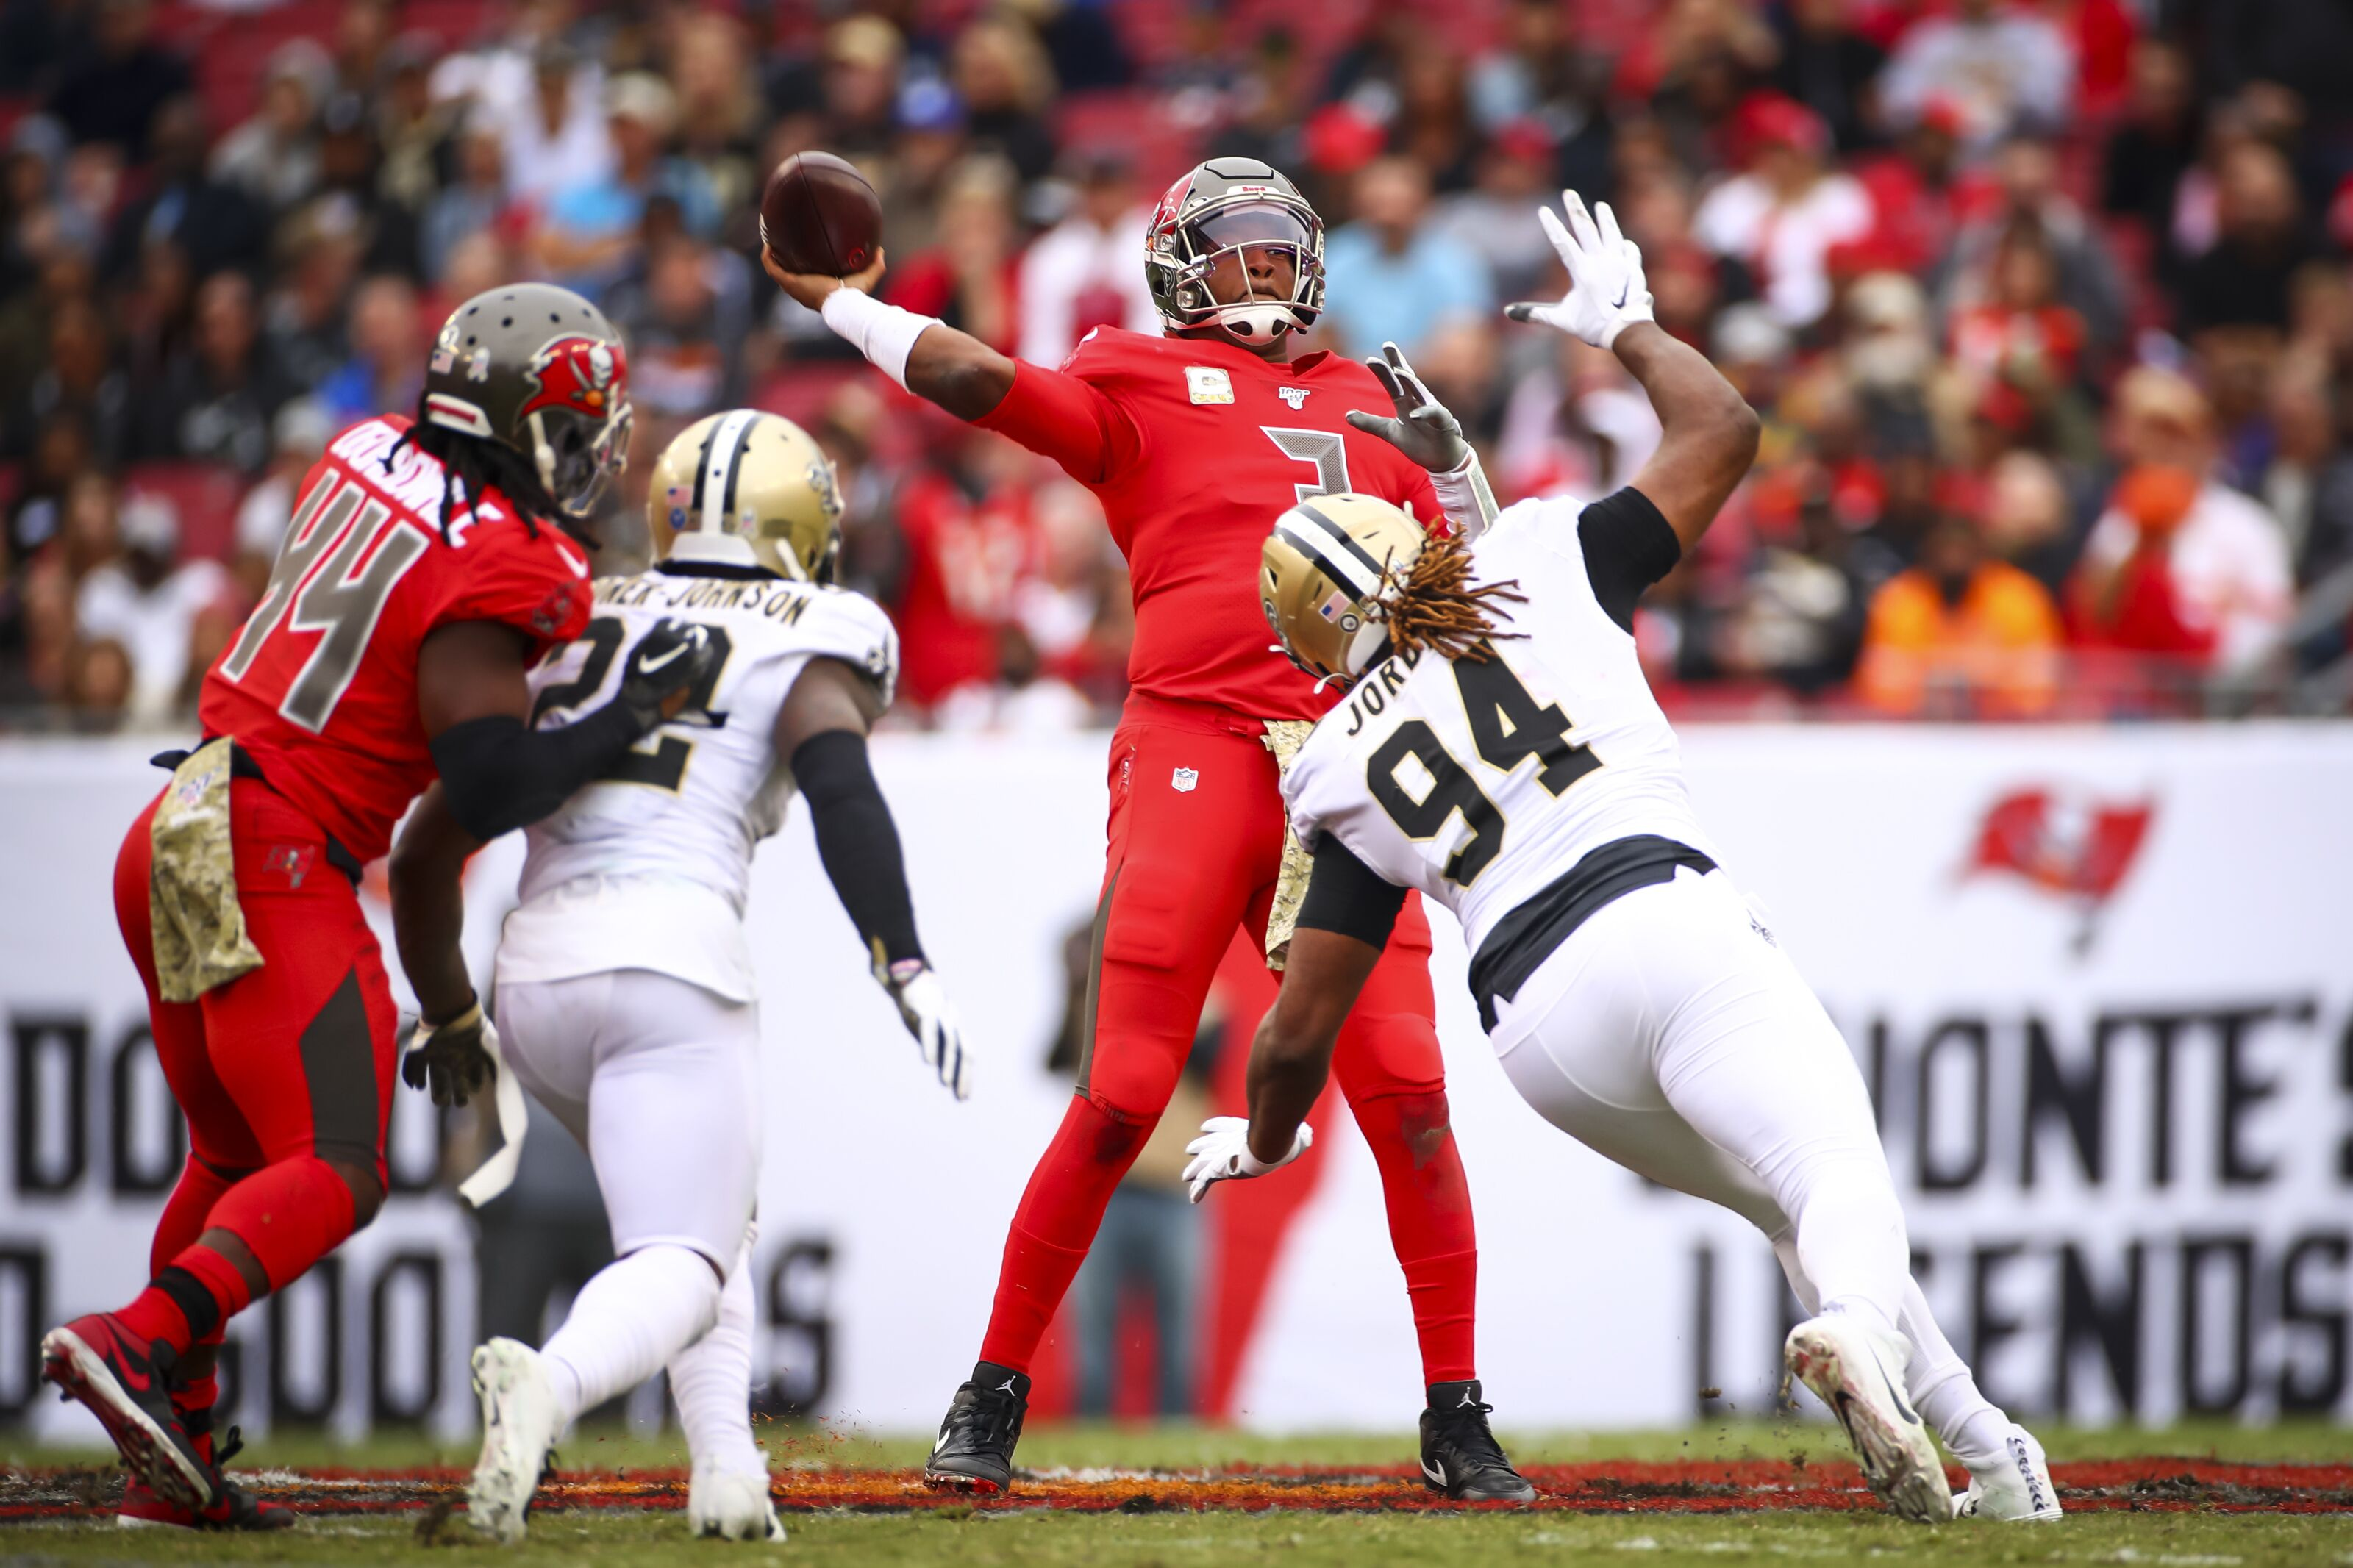 Buccaneers lose, Jameis Winston throws four picks, and Mike Evans frustrated